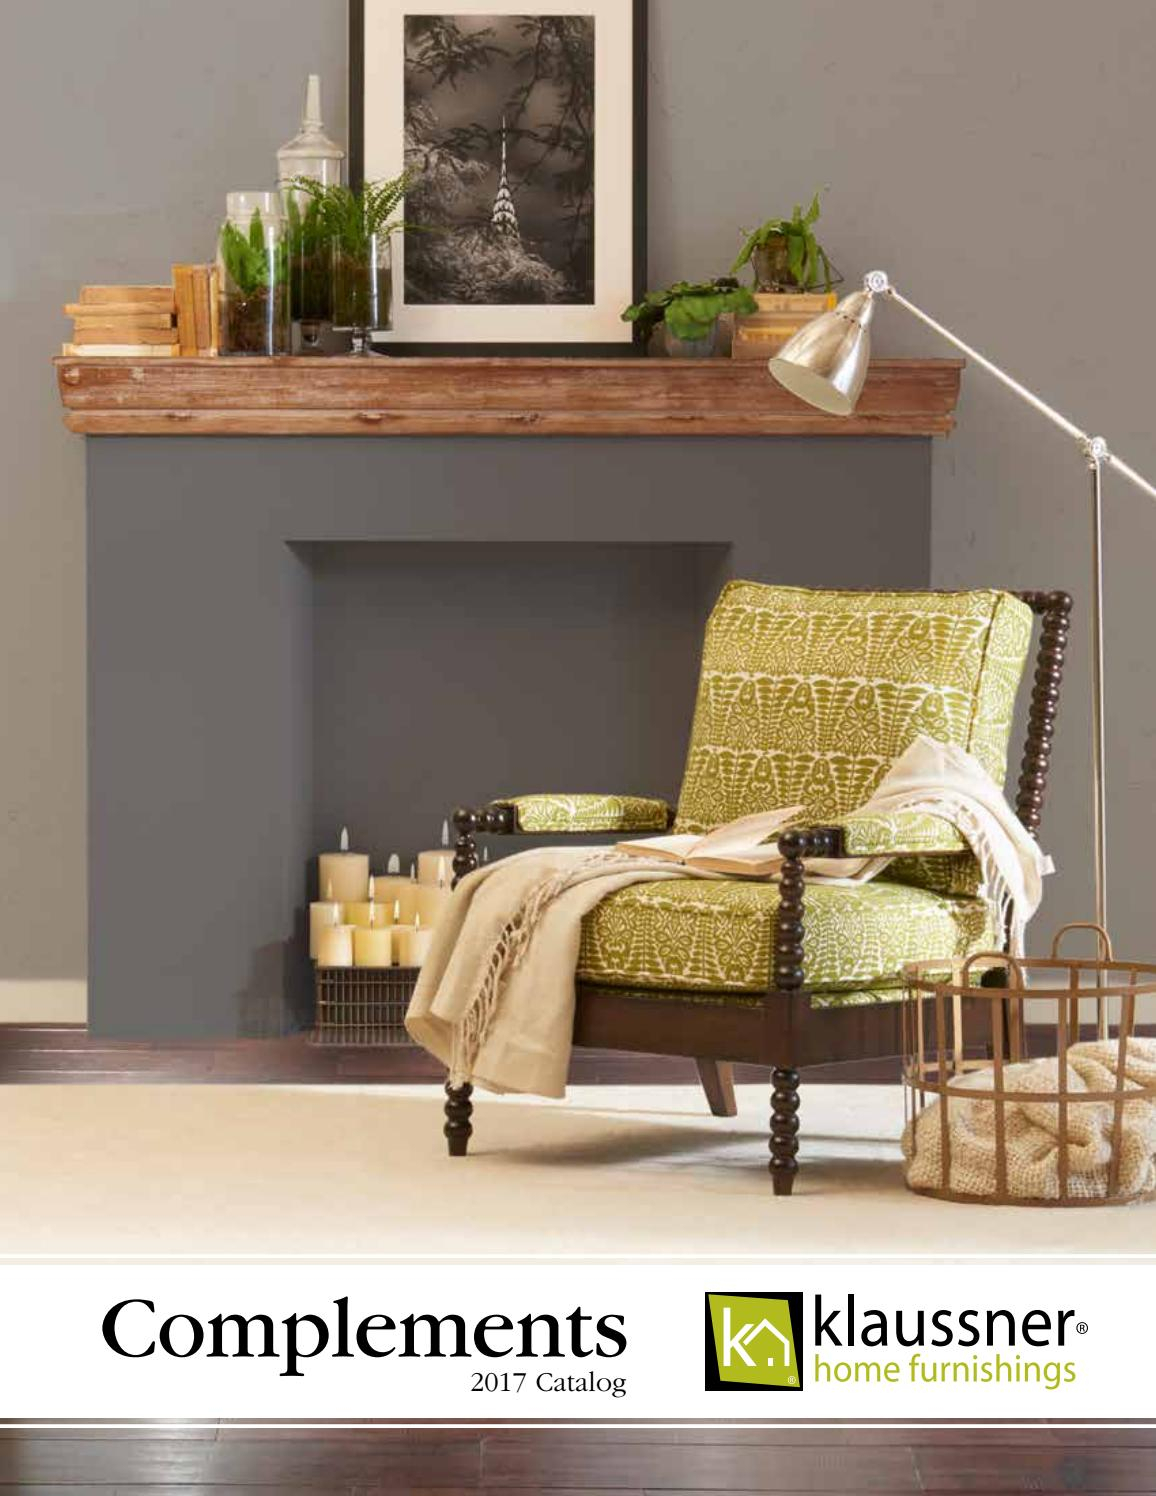 Complements Catalog 110617Klaussner Home Furnishings - Issuu with Bailey Angled Track Arm Swivel Gliders